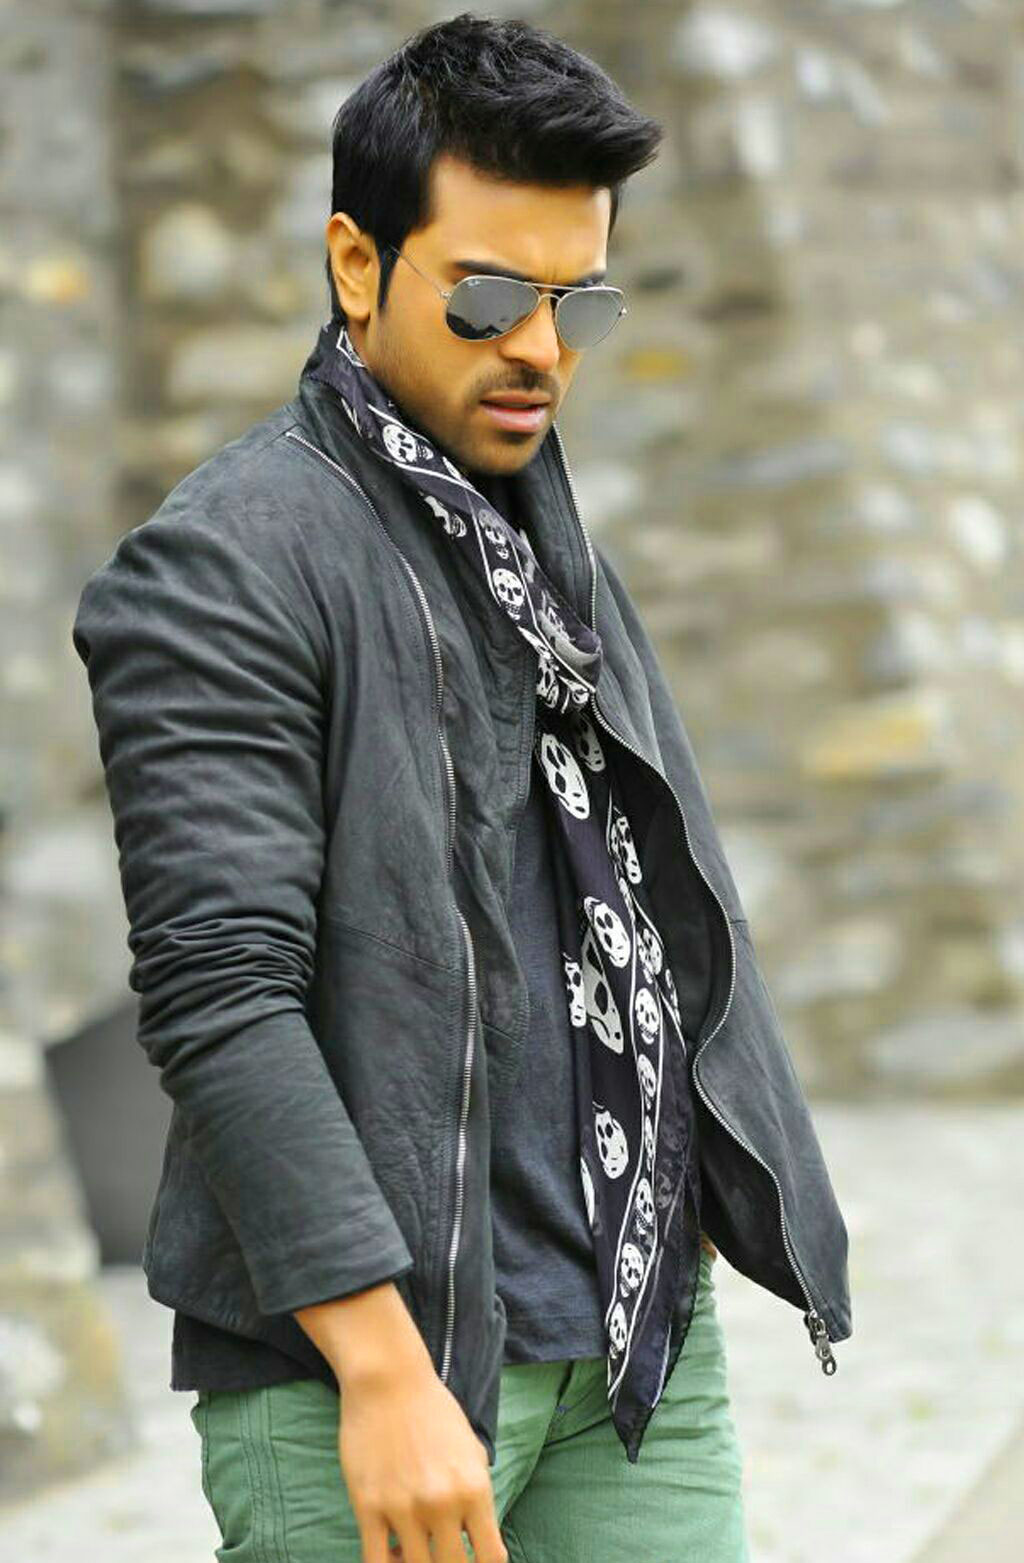 Ram Charan images Wallpaper Photo Pics Download